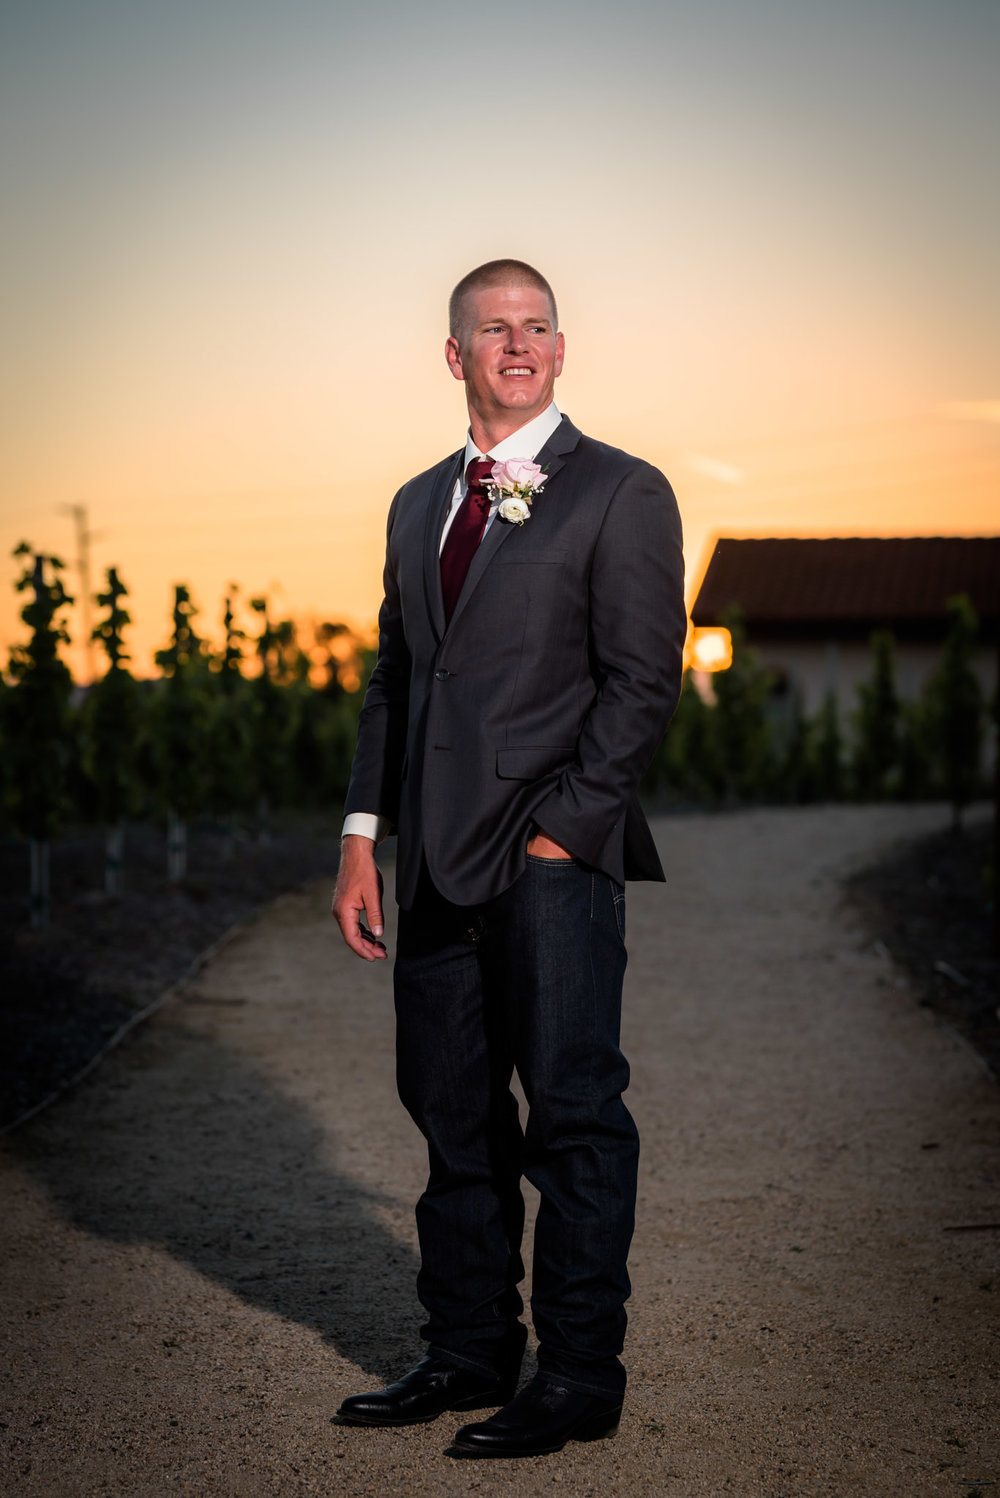 Avensole-Winery-Temecula-Wedding-Josh-and-Olivia-3836.JPG